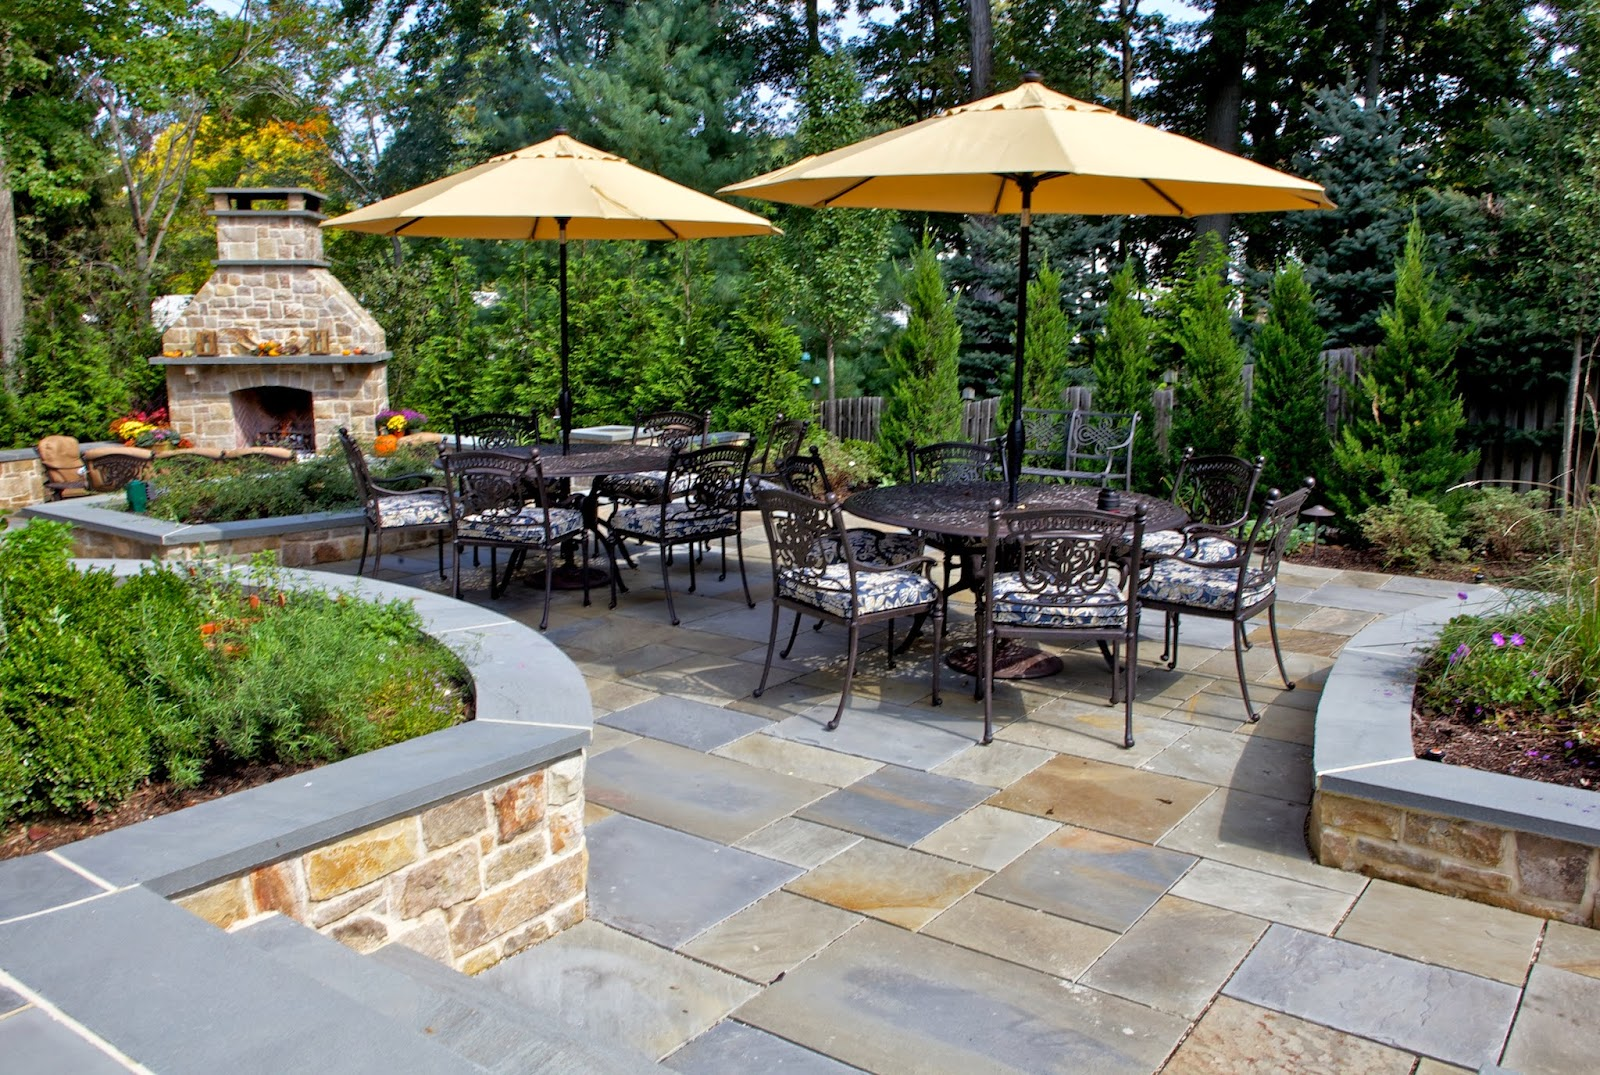 backyard patio pavers patio design ideas. Black Bedroom Furniture Sets. Home Design Ideas